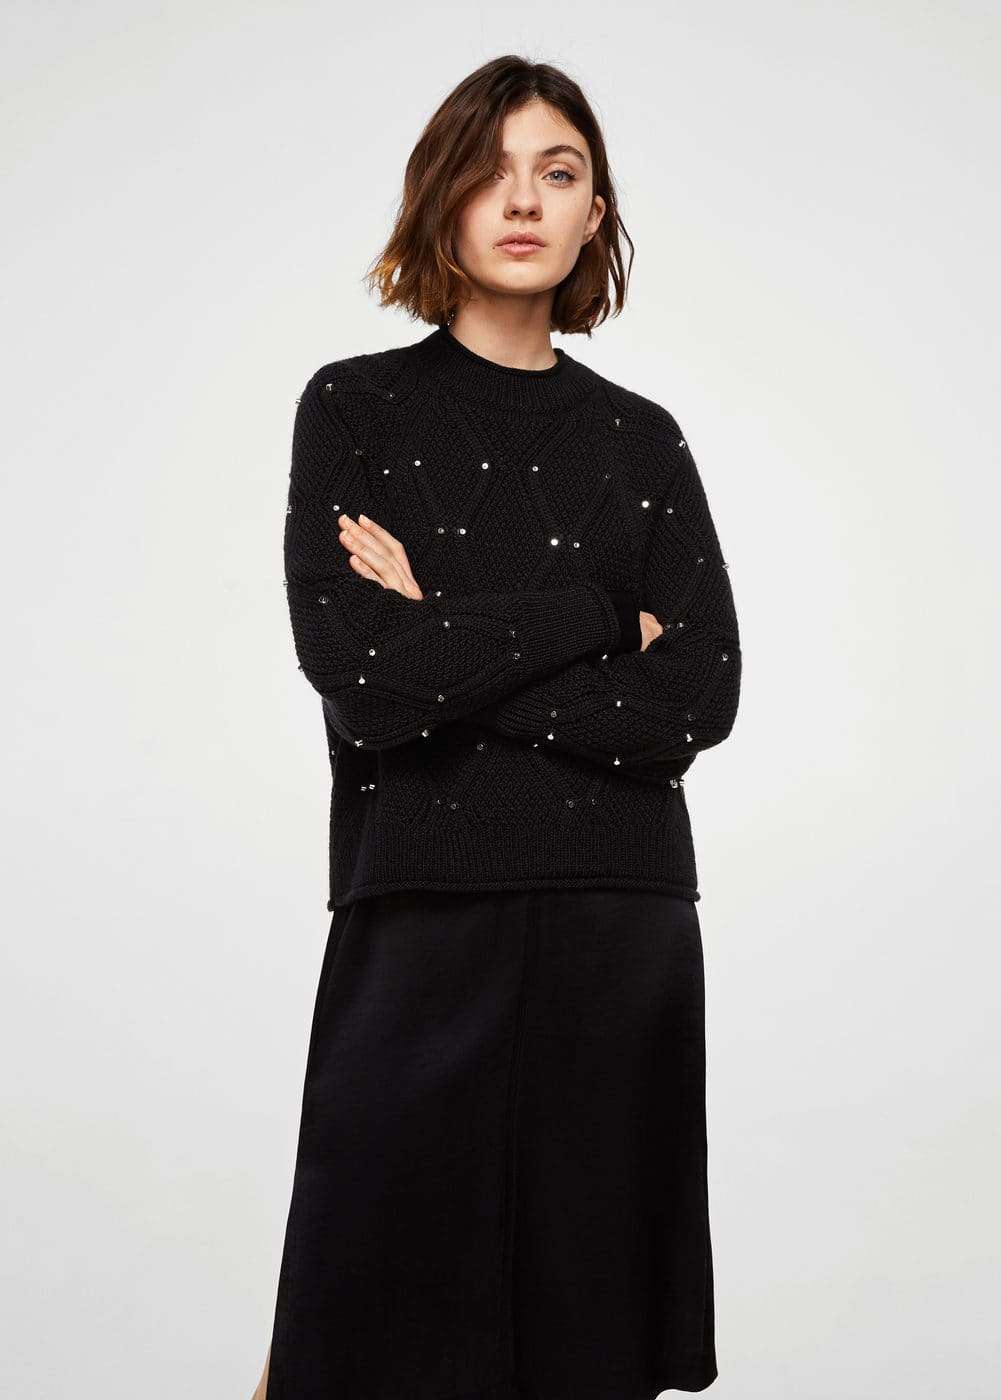 Studded Knitted Sweater by Mango